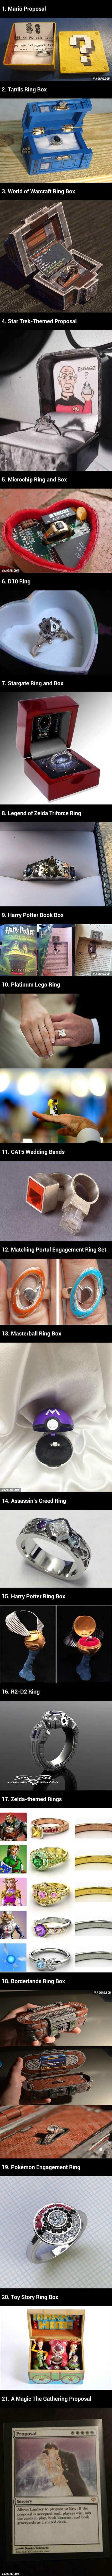 21 Ways to Propose to Your Geek Girlfriend - I would love a funny box, but the ring should be a engagement ring